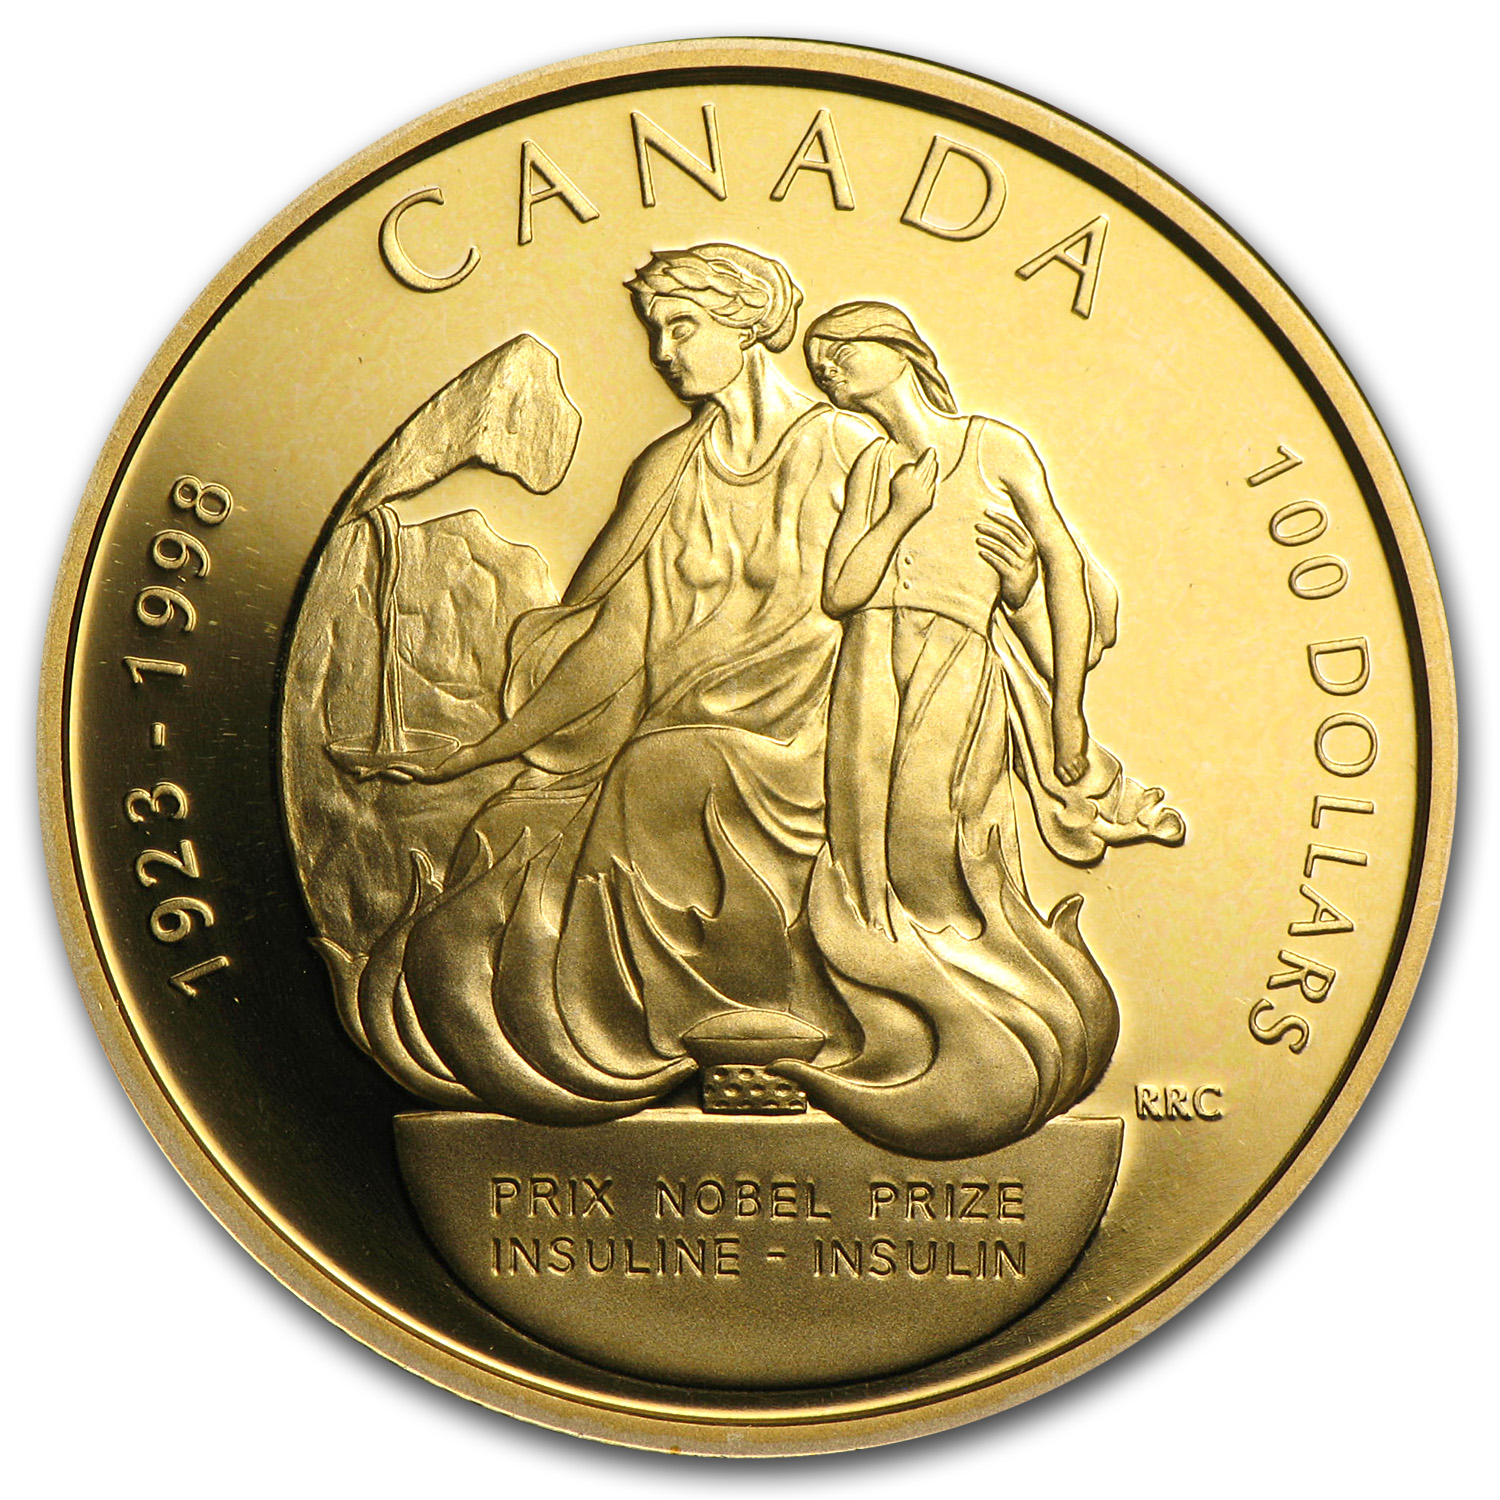 1998 1/4 oz Gold Canadian $100 Nobel Prize Insulin Proof